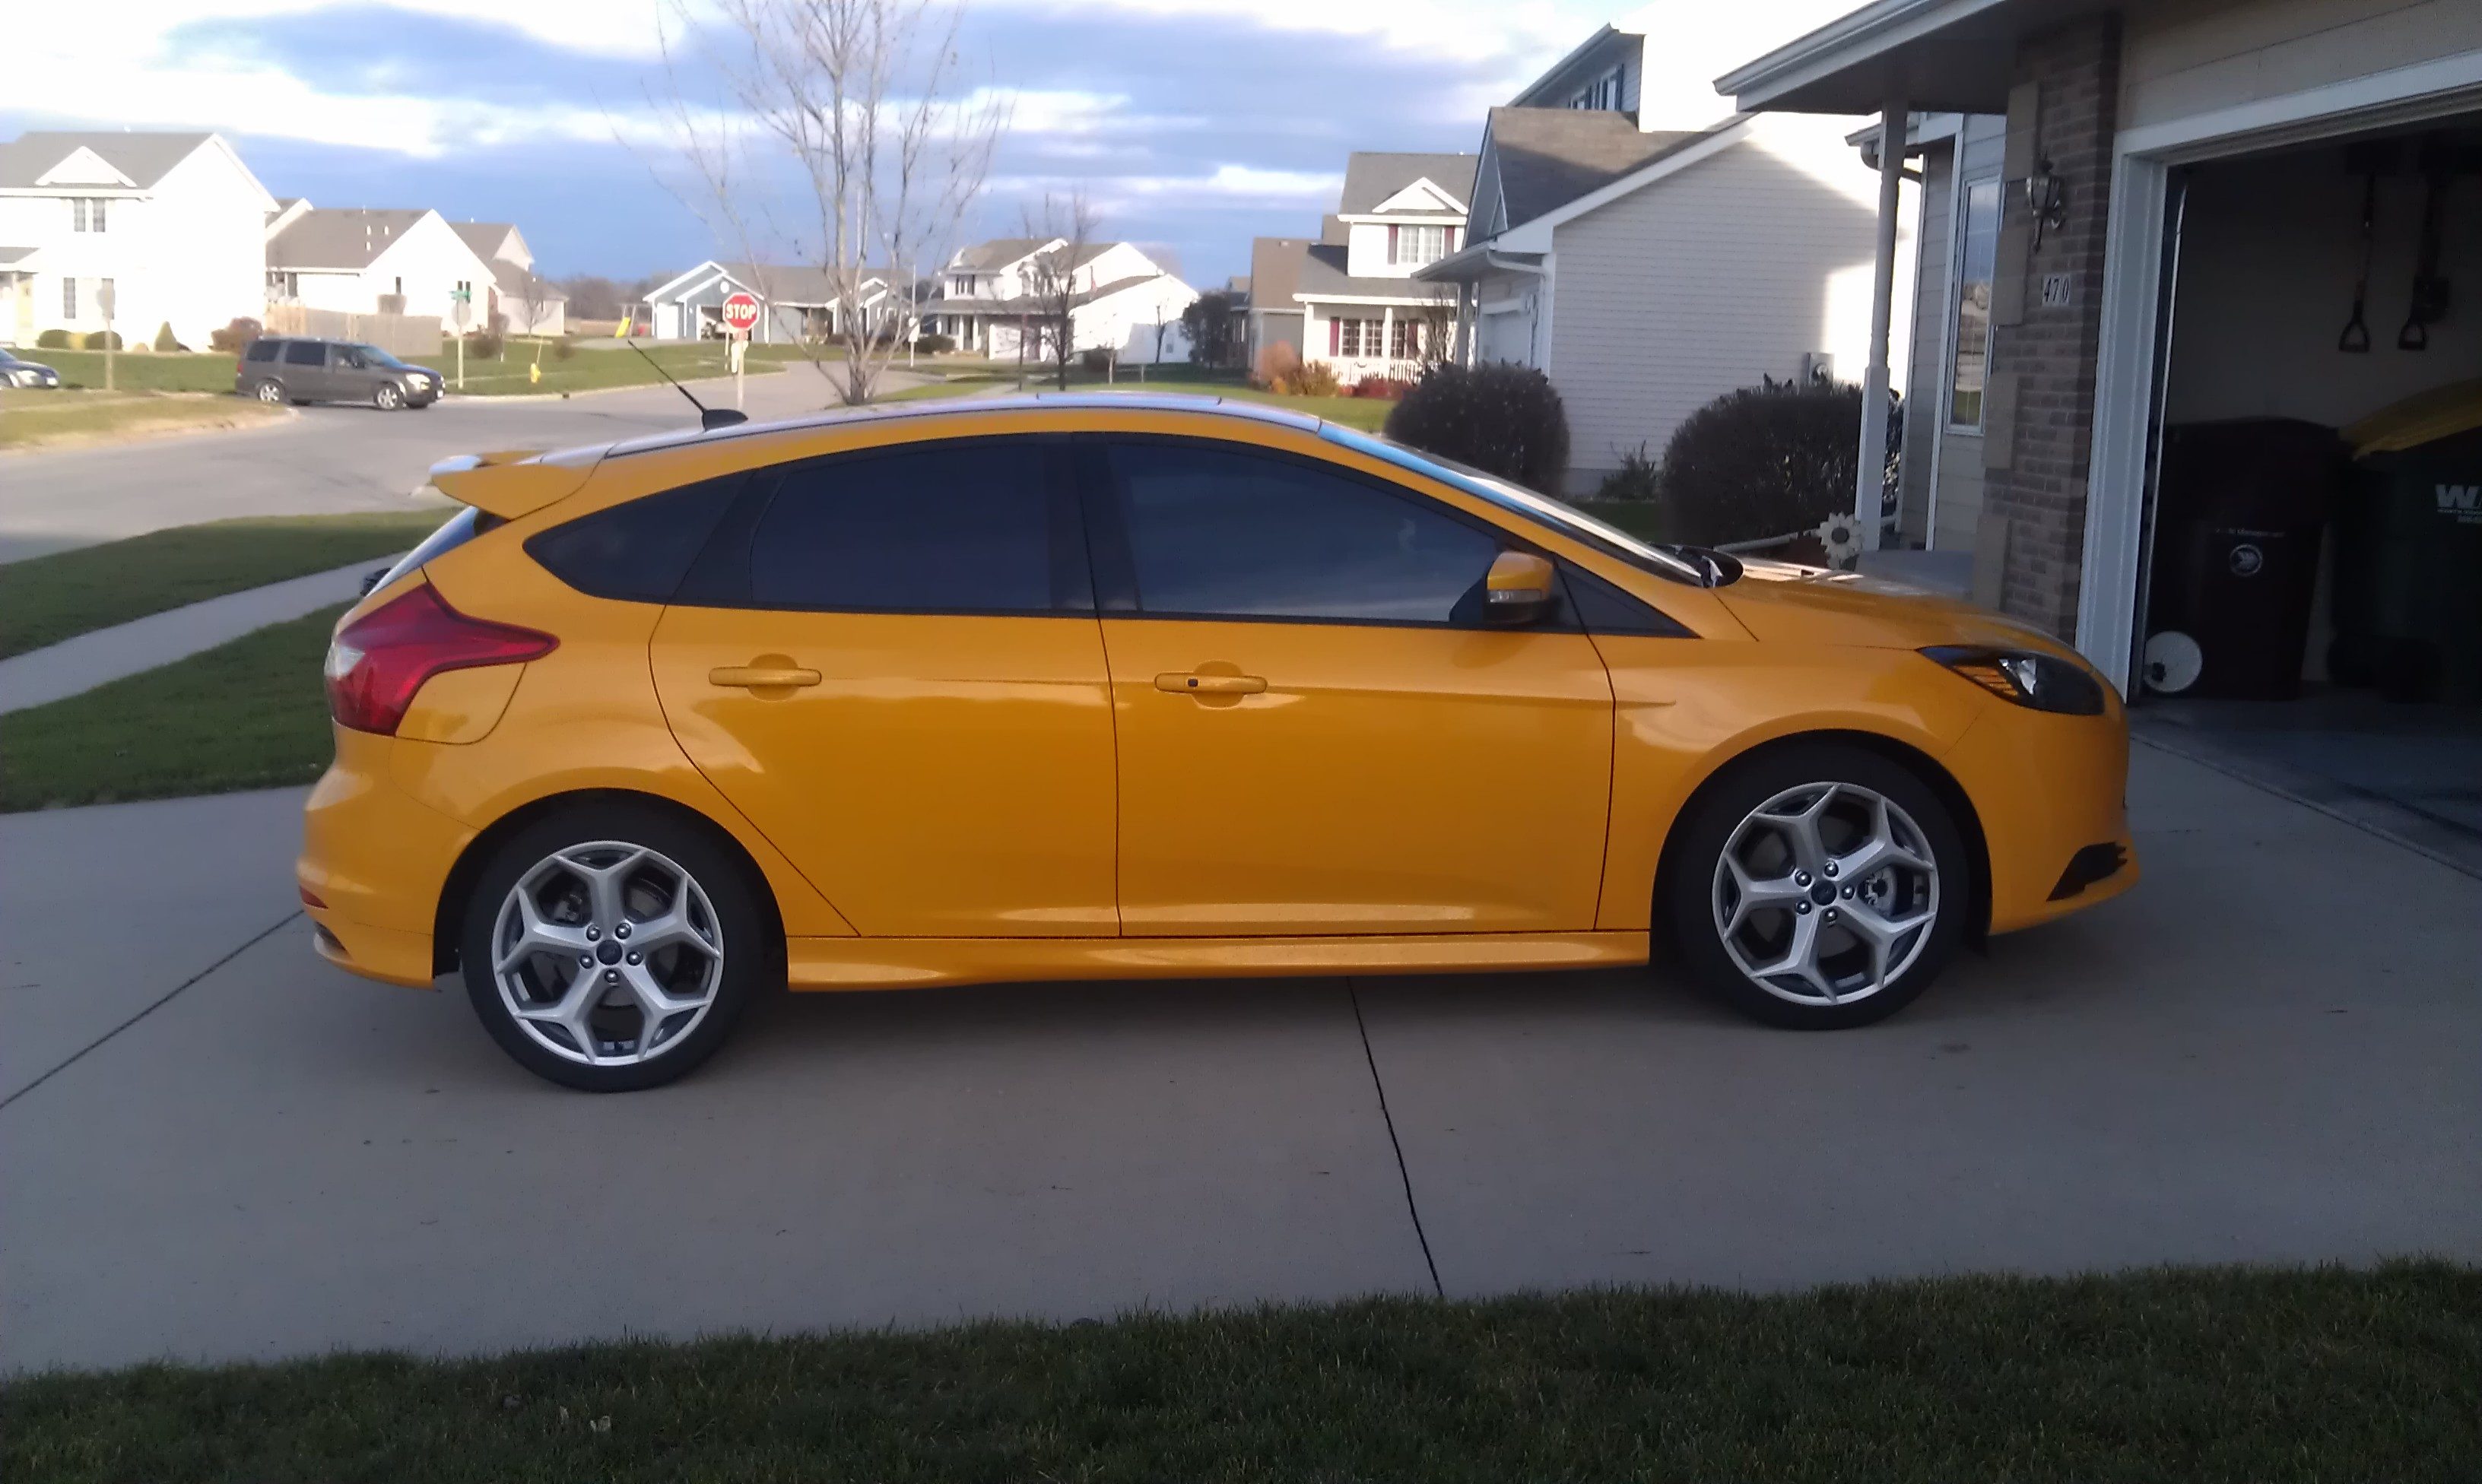 Window Tinting Page 3 2012 Ford Focus Tinted Windows Name New Tint 2 Views 14299 Size 7940 Kb